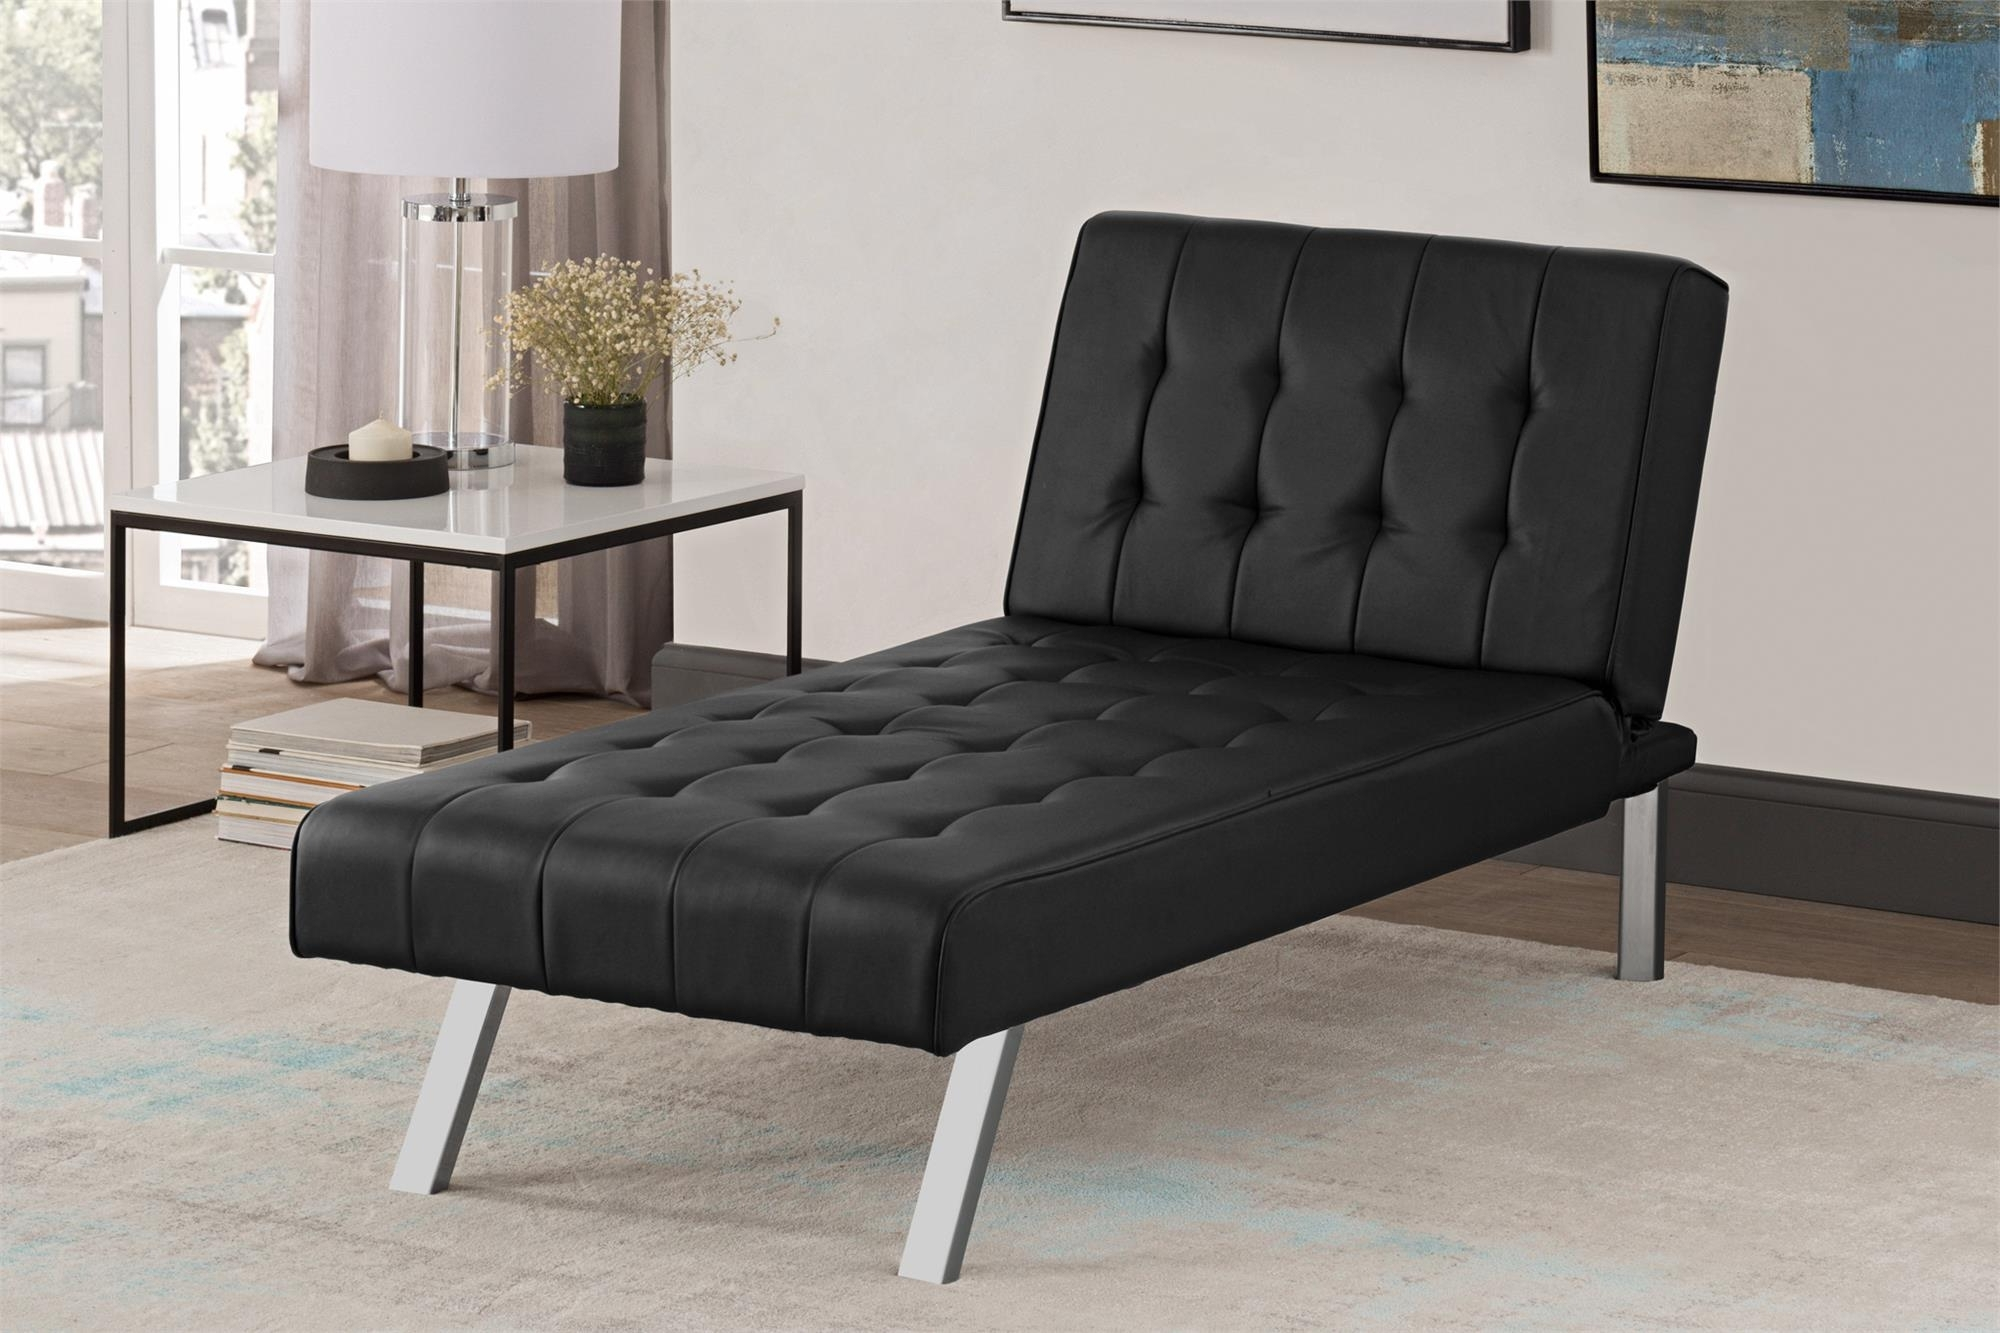 Dhp Emily Futon Chaise Lounger, Multiple Colors – Walmart With Well Known Emily Chaise Lounges (View 4 of 15)